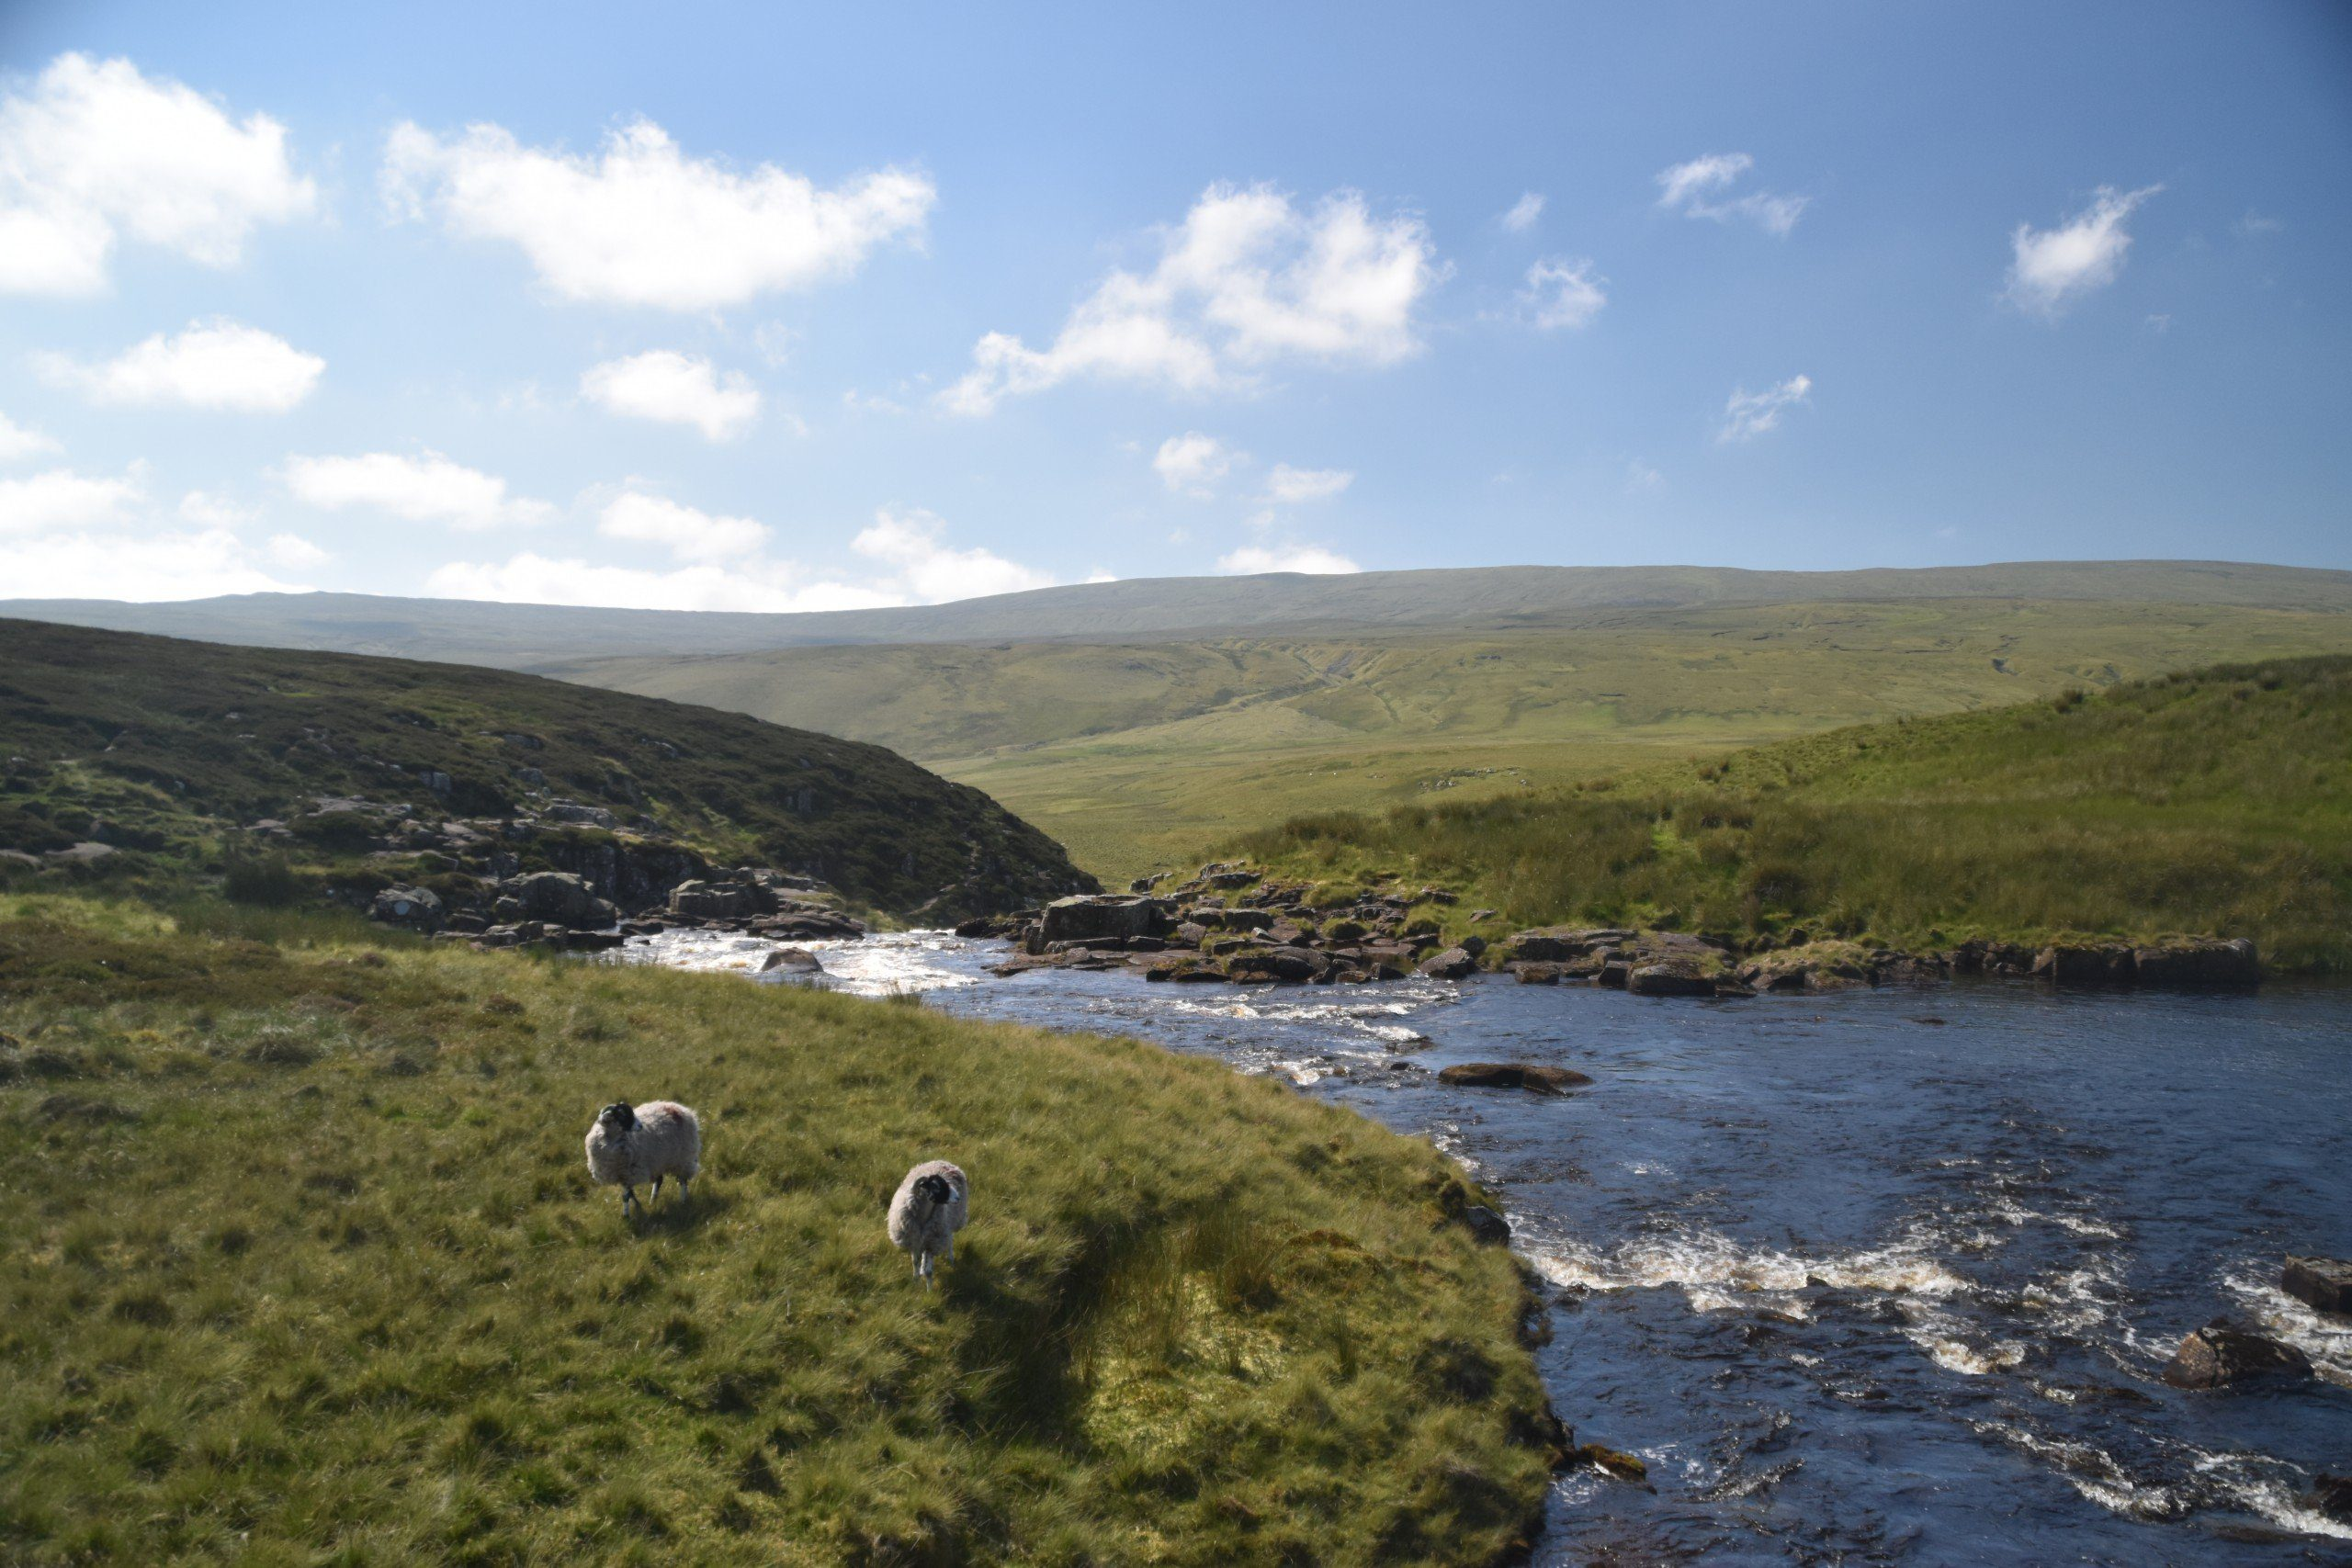 Two sheep enjoy the solitude by a lonely river on the way to Dufton.